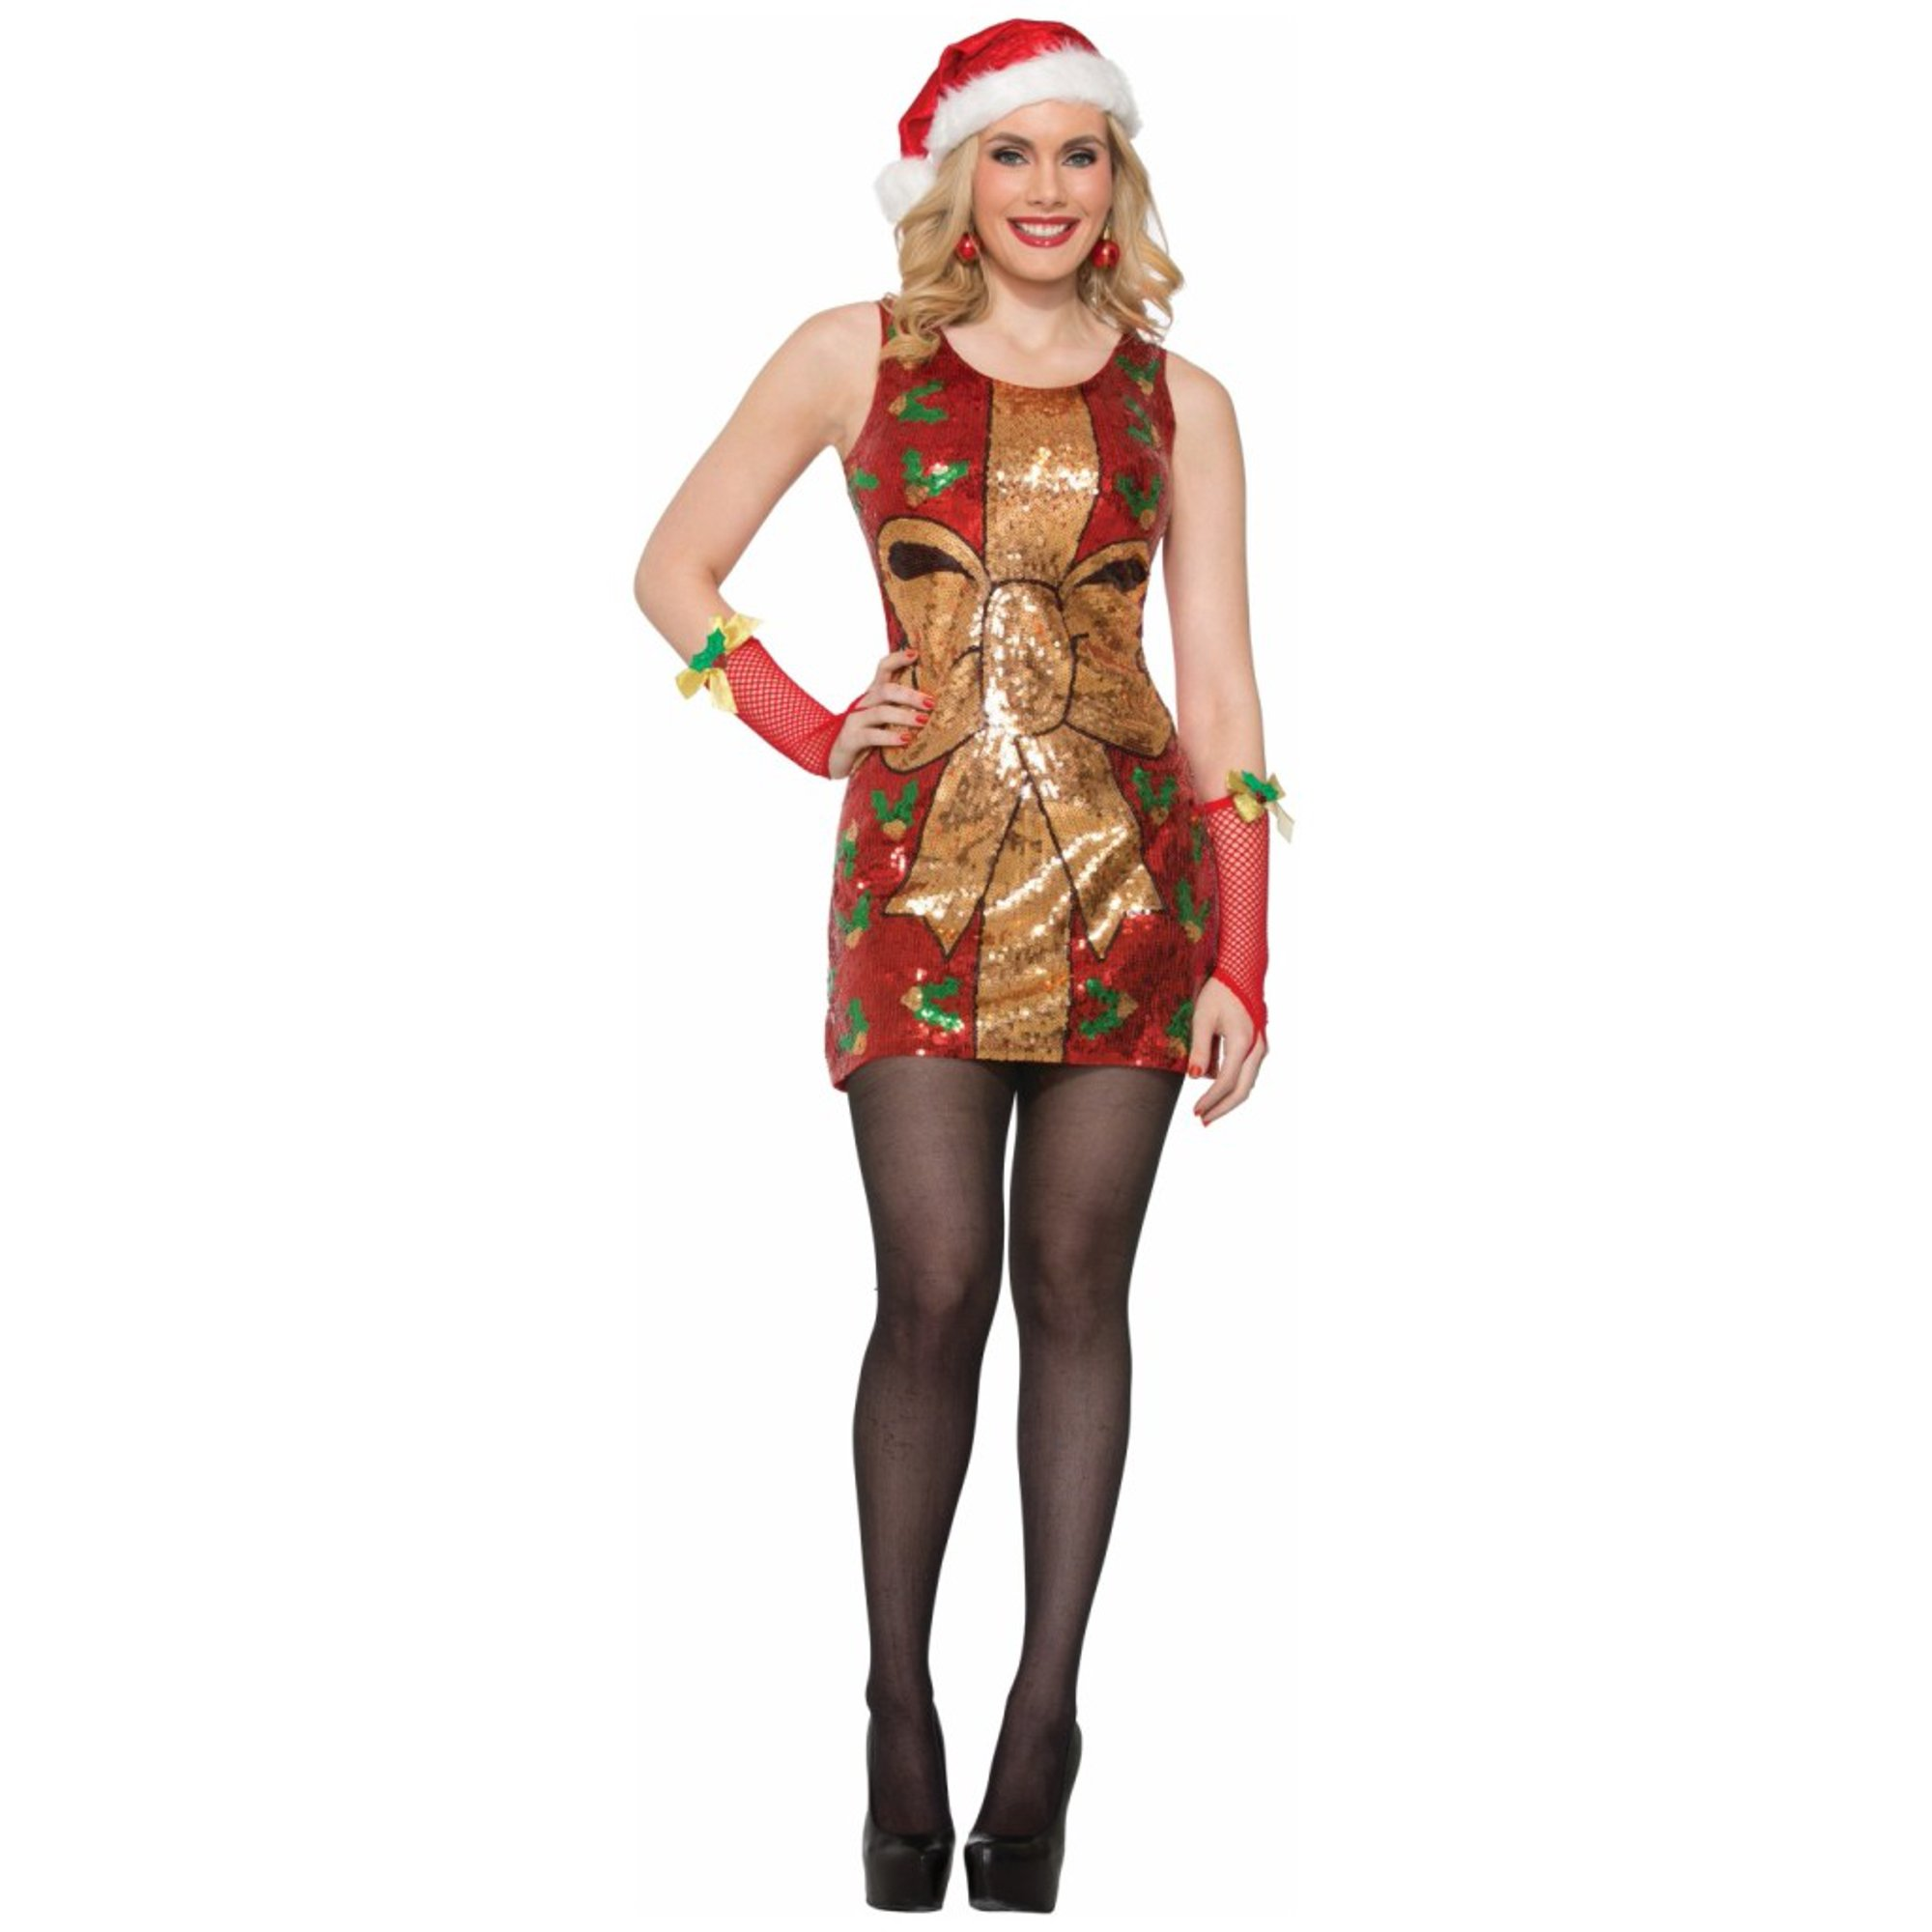 03b75d40a27bf Sexy Sparkly Present Sequin Christmas Dress Adult Women's Costume XS/SM -  M/L